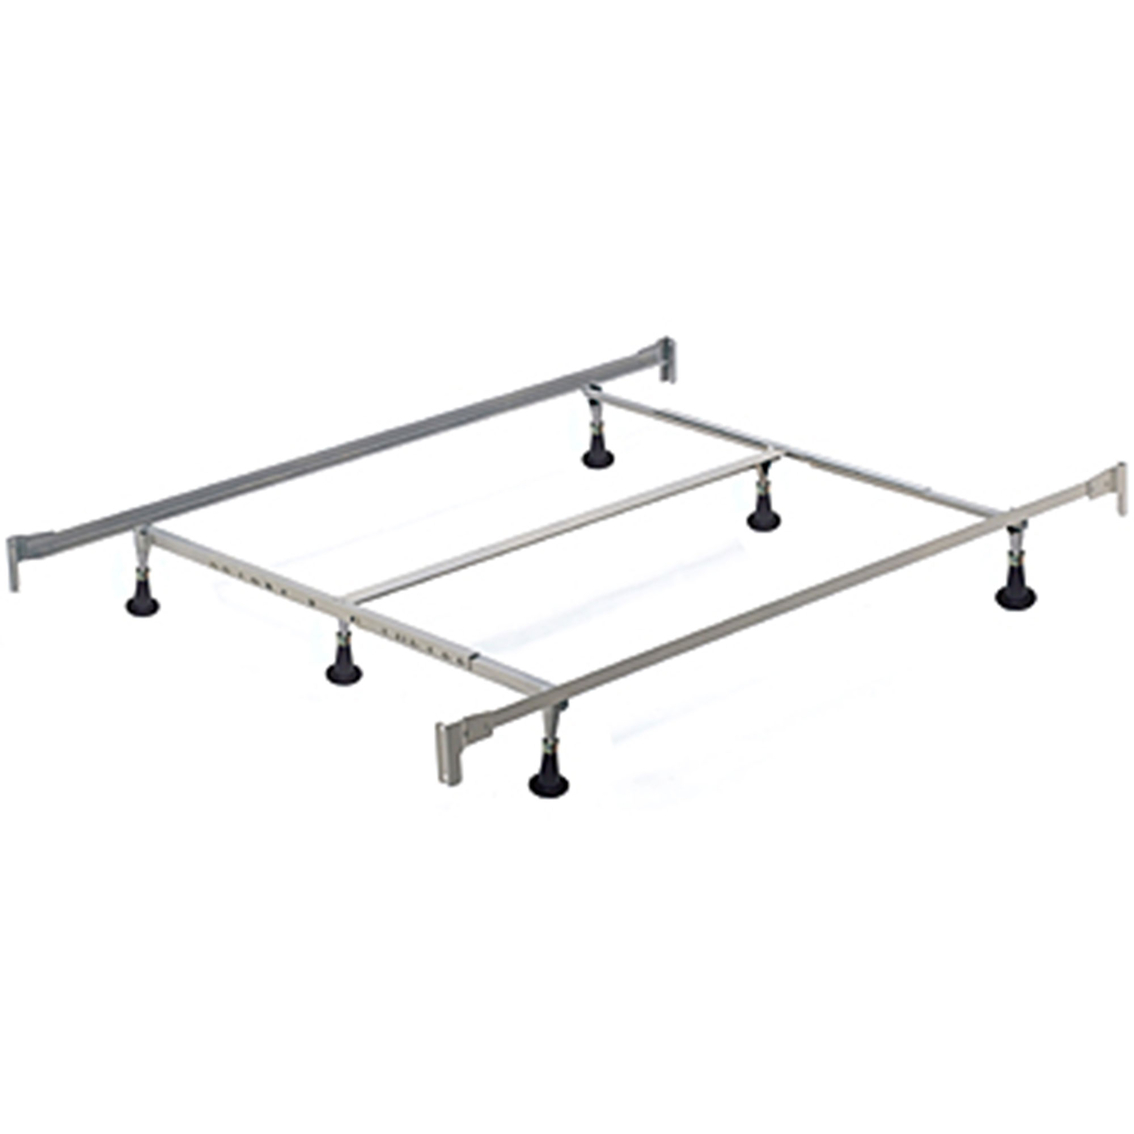 Hillsdale Queen/king Bed Frame With 6 Leg Support